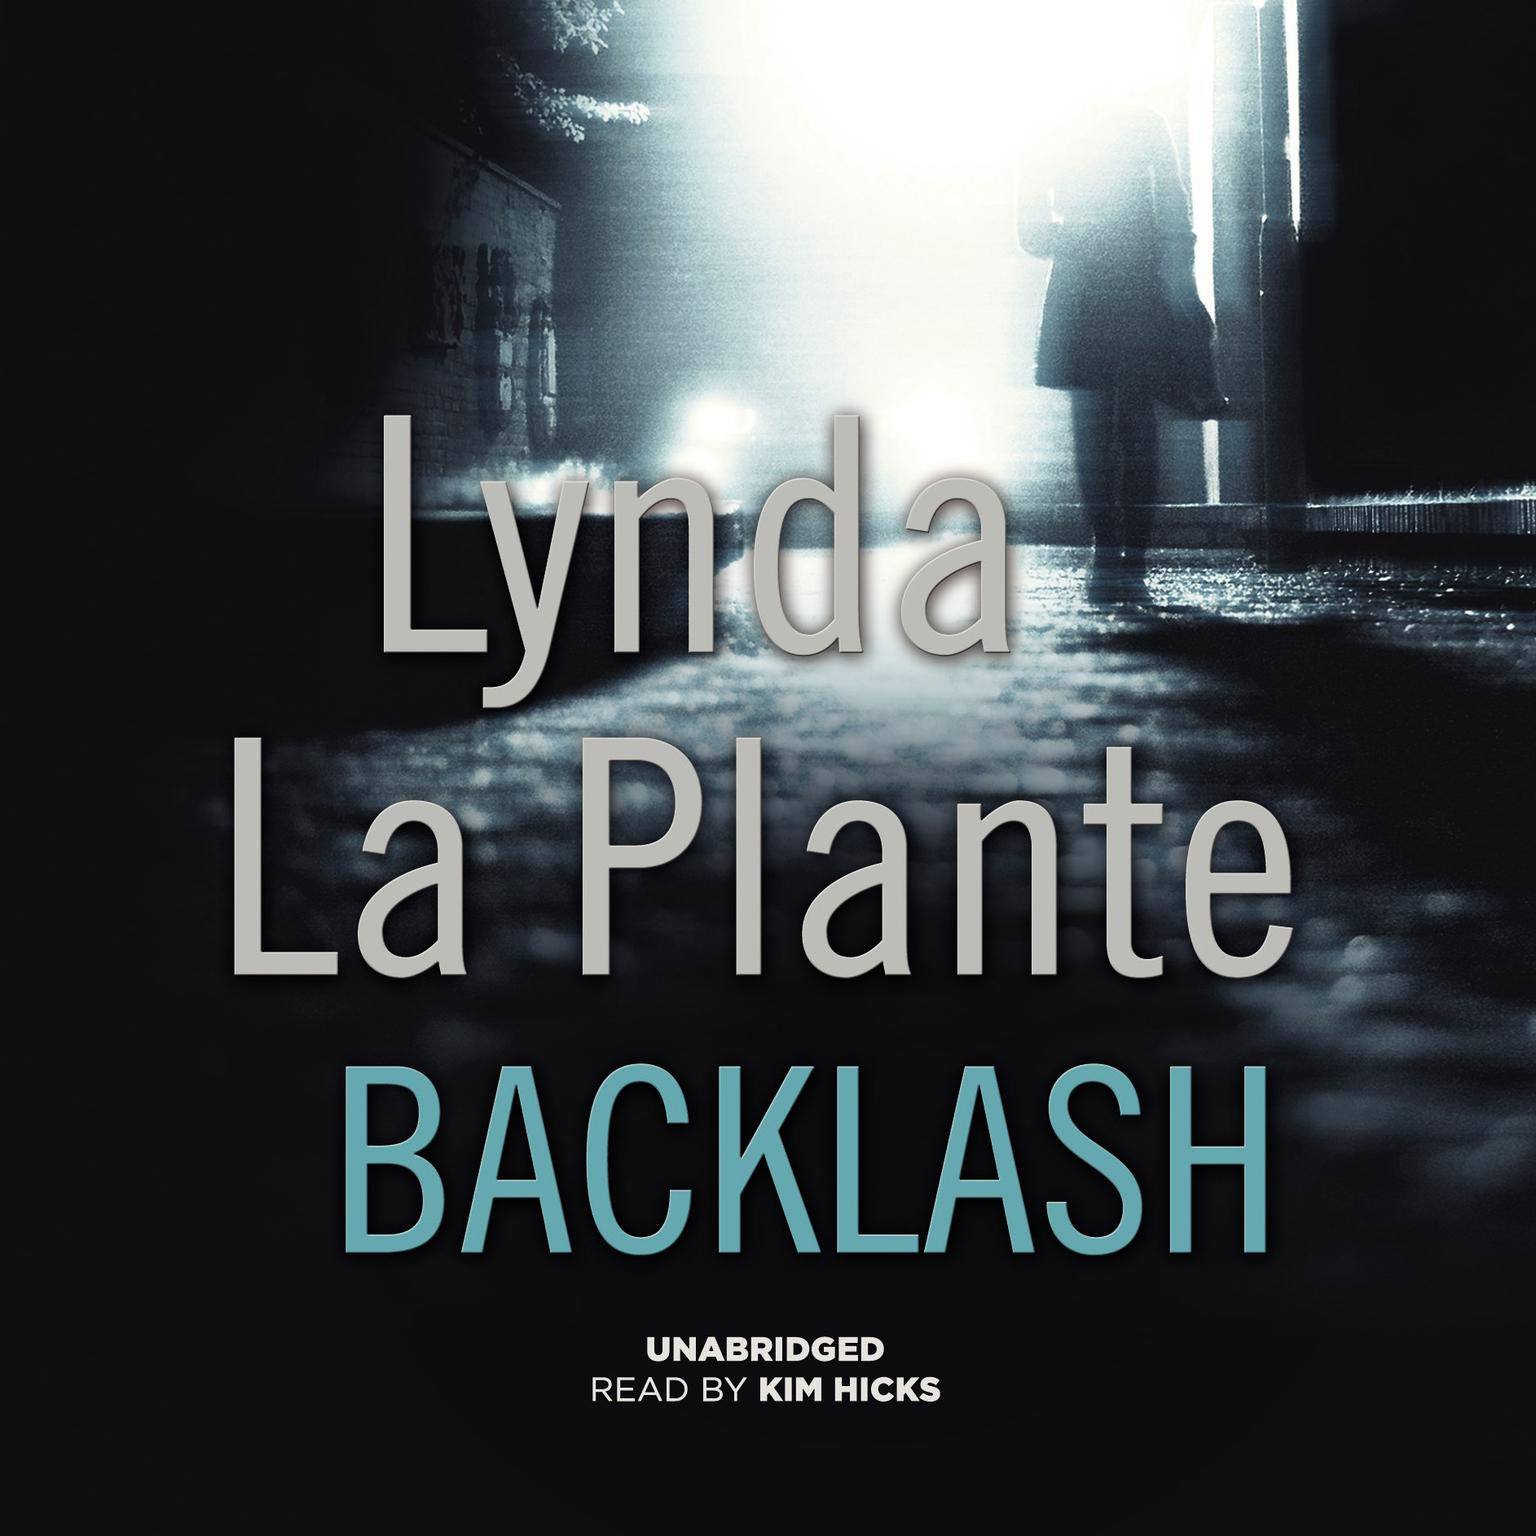 Printable Backlash Audiobook Cover Art